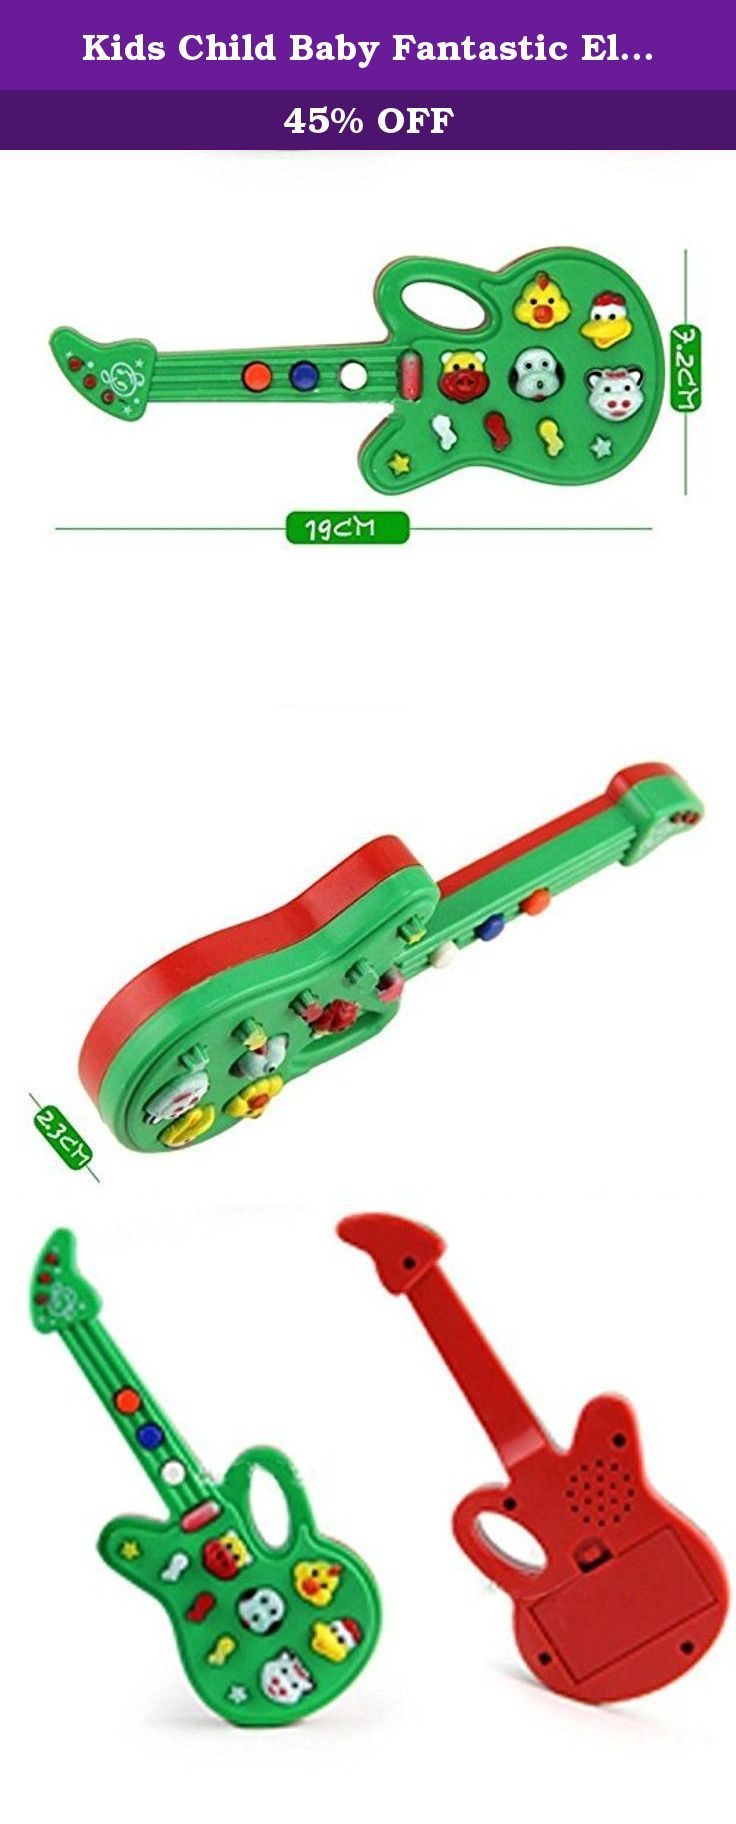 Kids Child Baby Fantastic Electronic Guitar Sound Rhyme Developmental Music Toys. Brand:NEW.Color:Green+Red.Gender:Unisex.Recommended Age Range:1+.1Pc x Guitar Toy ( batteries are not included). 100% brand new and high quality Material: Plastic This is a children's music toys, there are many kinds of music, you can let your child enjoy the pleasure of nursery rhymes. It can help children improve the color, shape, and the understanding of music, promote the development of the brain....